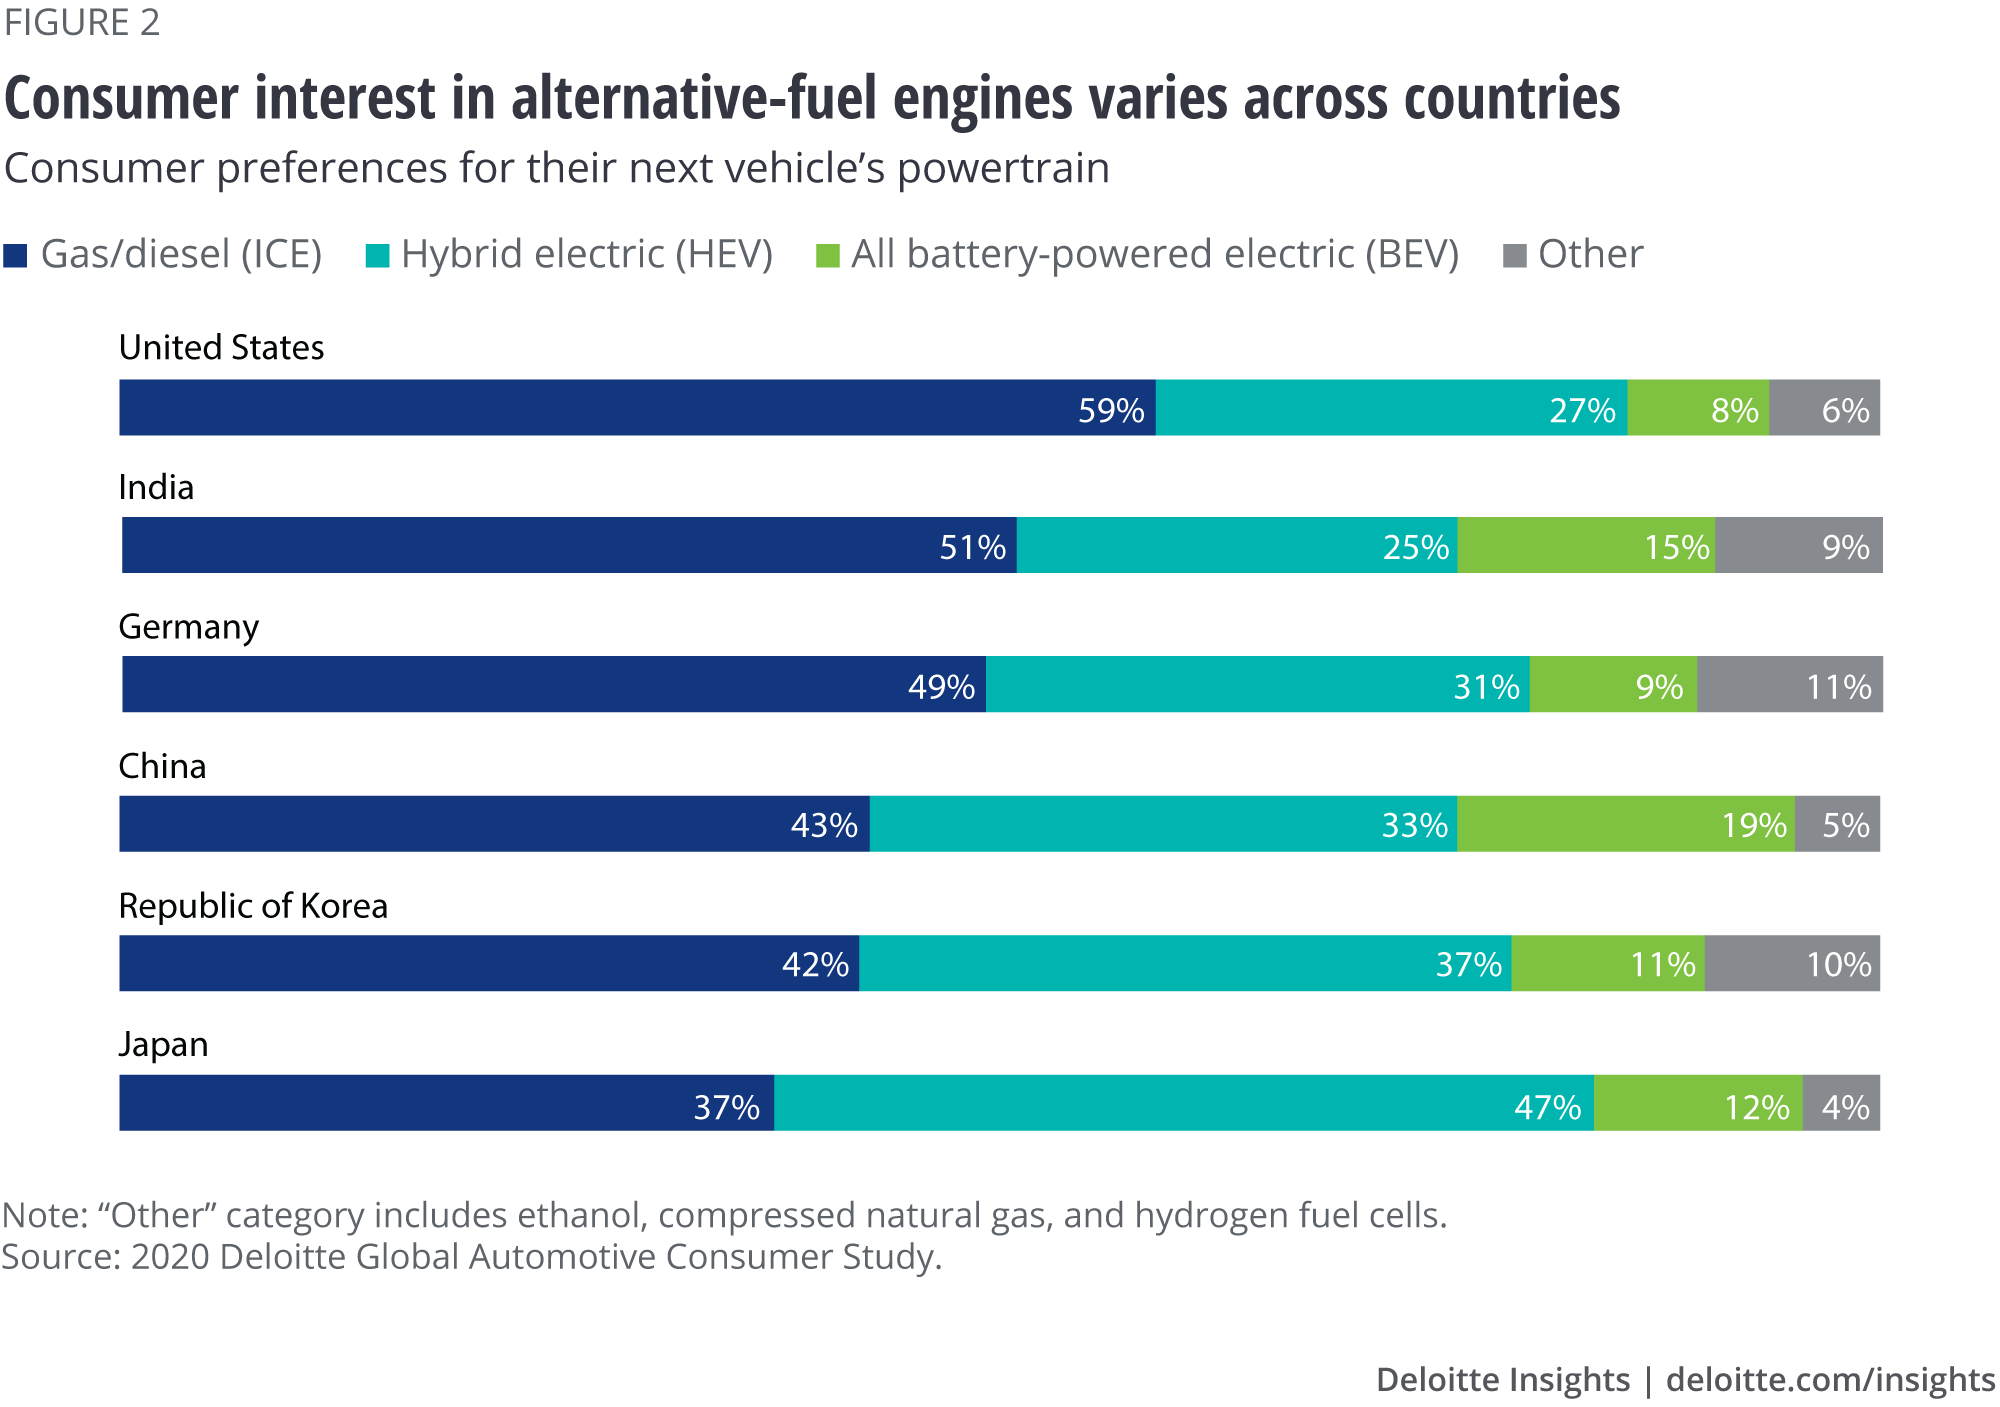 Consumer interest in alternative-fuel engines varies across countries